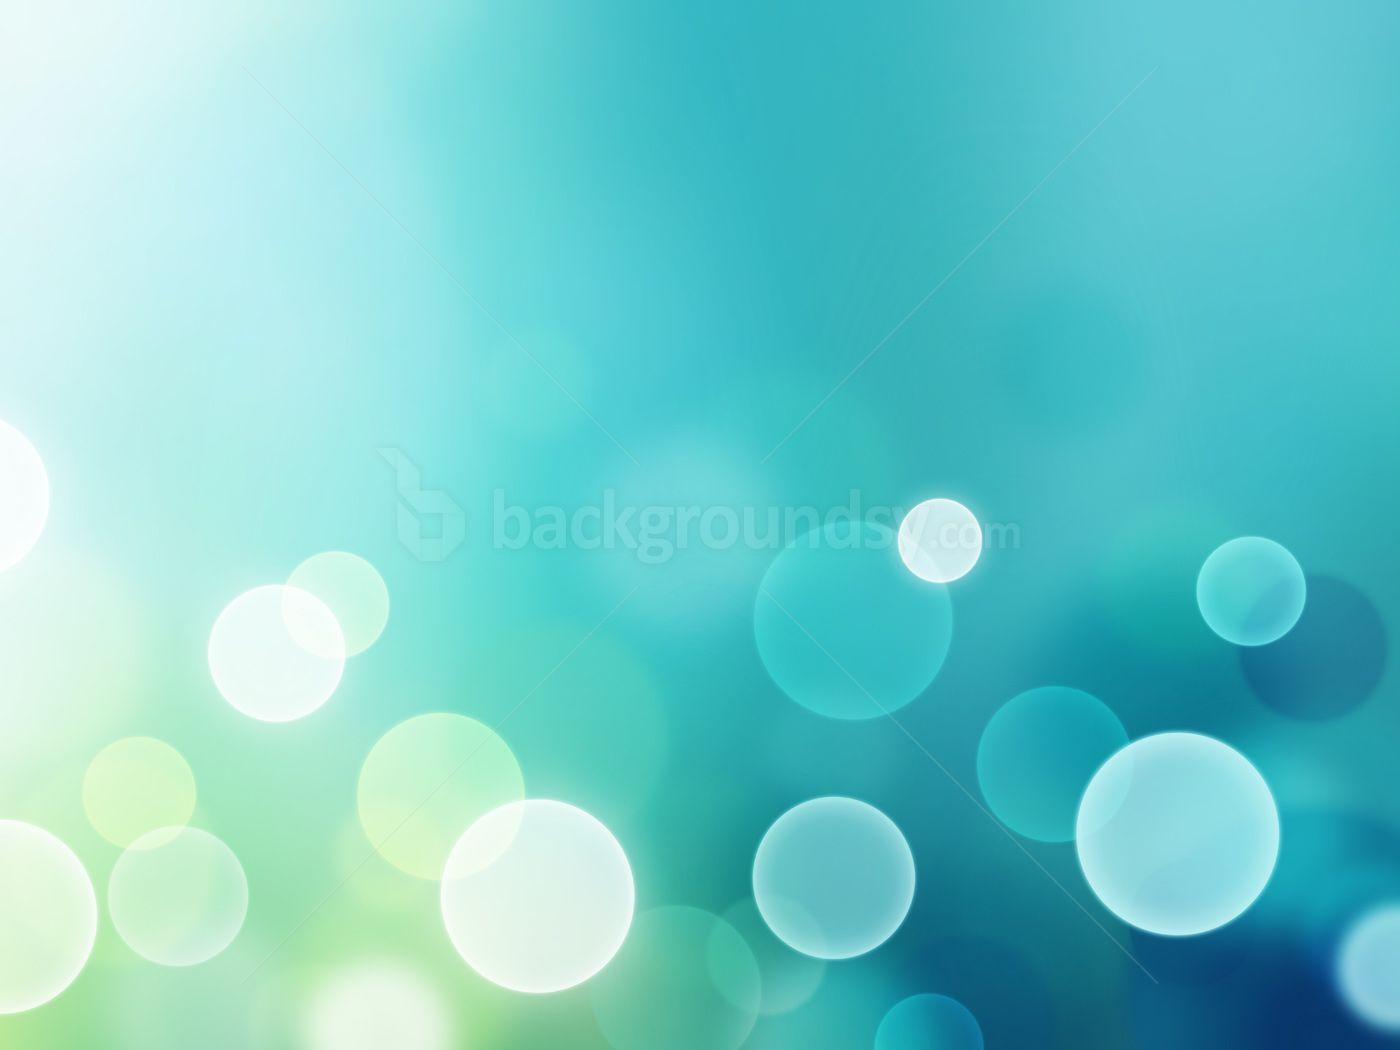 Wallpapers For Turquoise Backgrounds